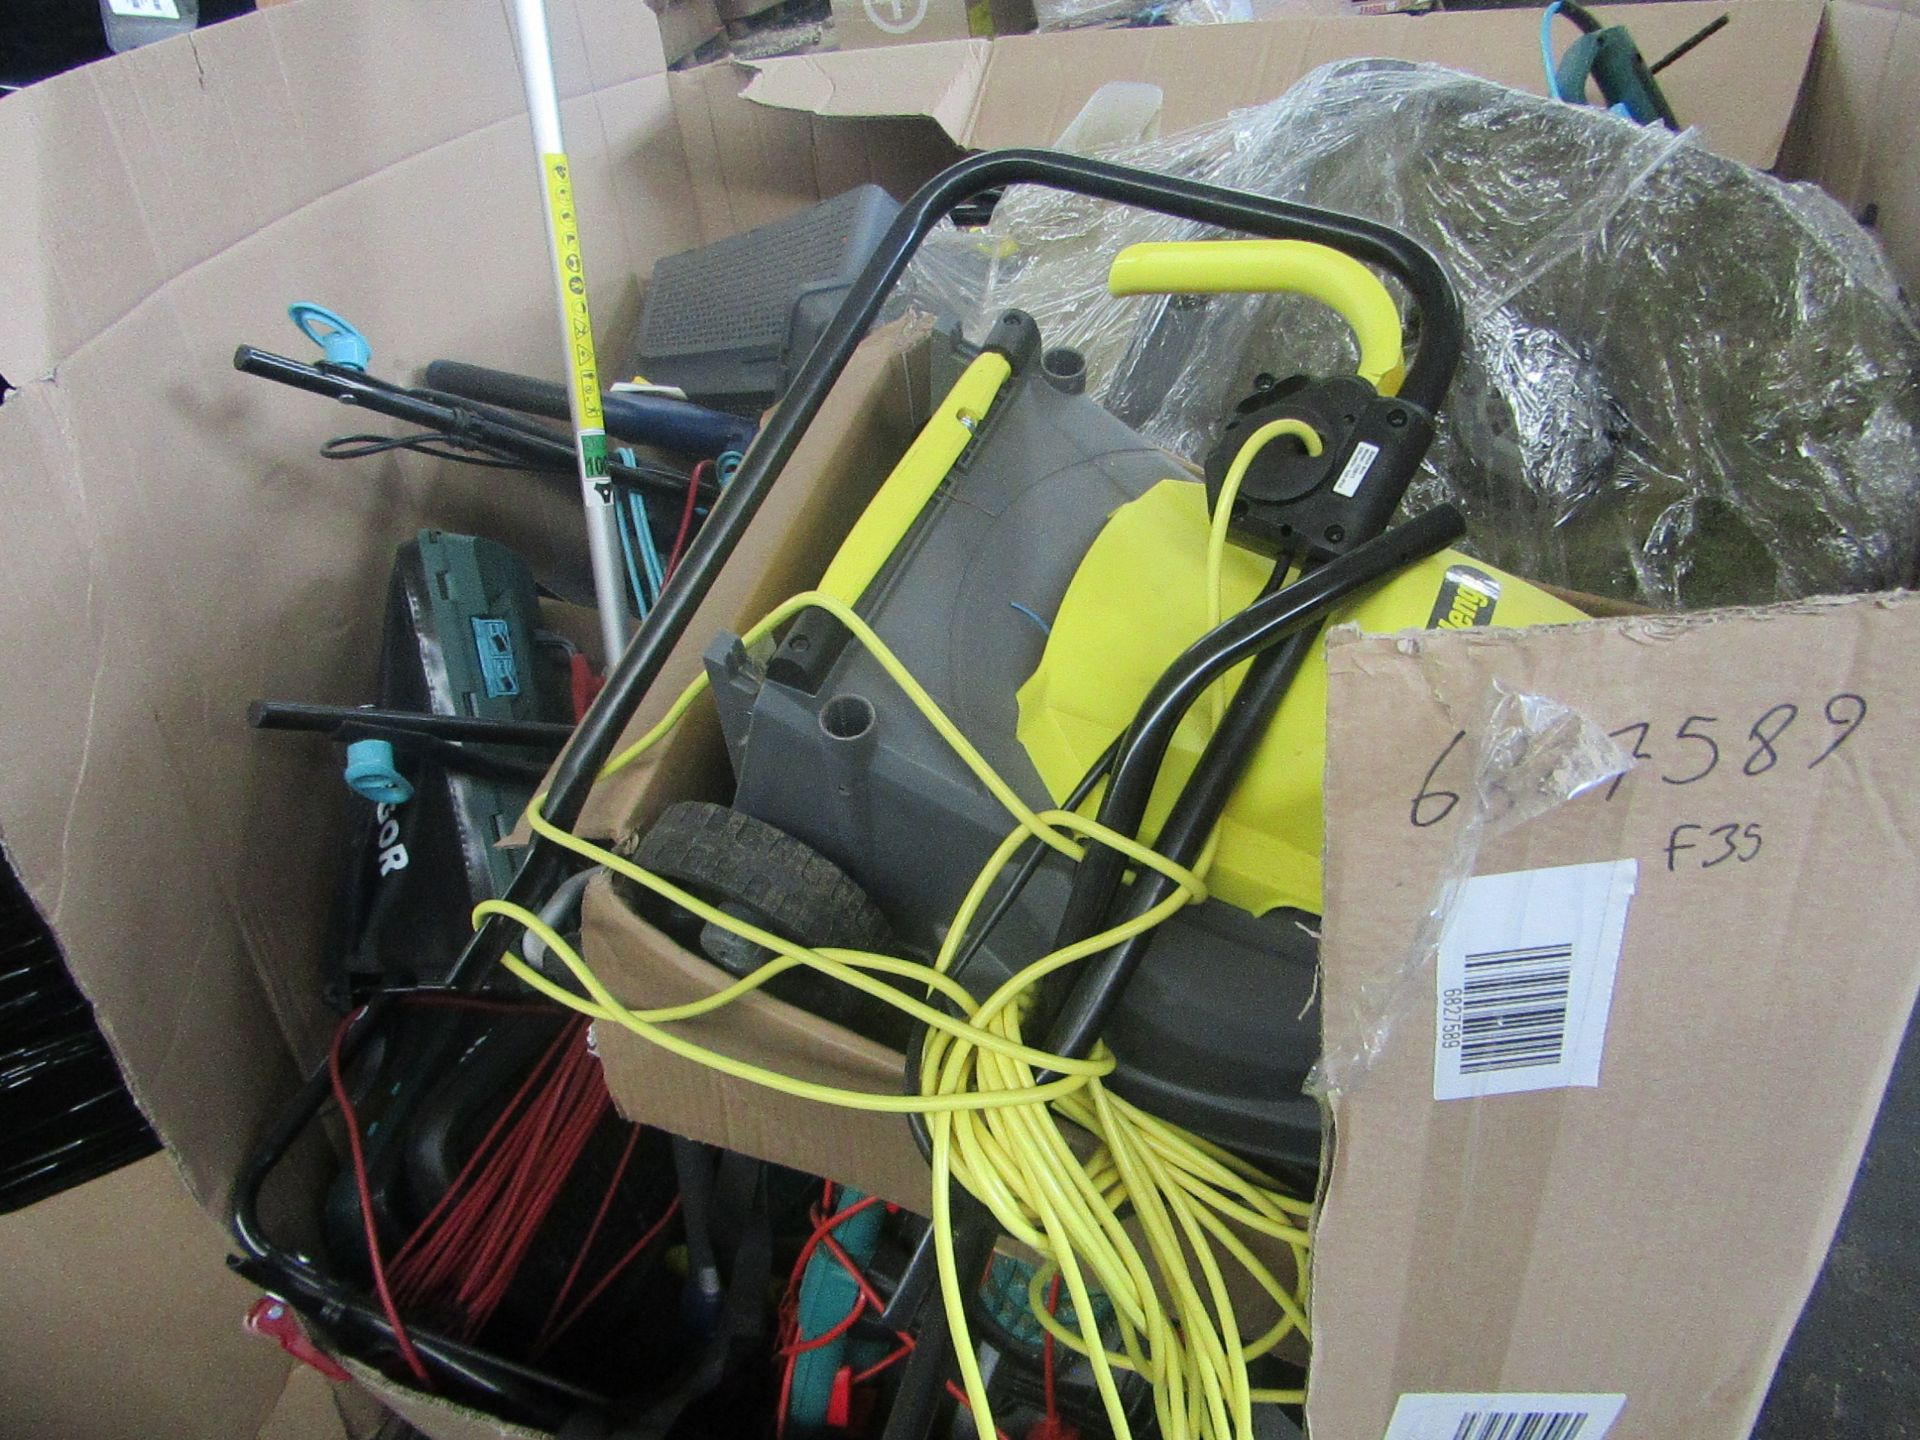   1X   PALLET OF FAULTY / MISSING PARTS / DAMAGED RAW CUSTOMER RETURNS ELECTRIC GARDEN POWER